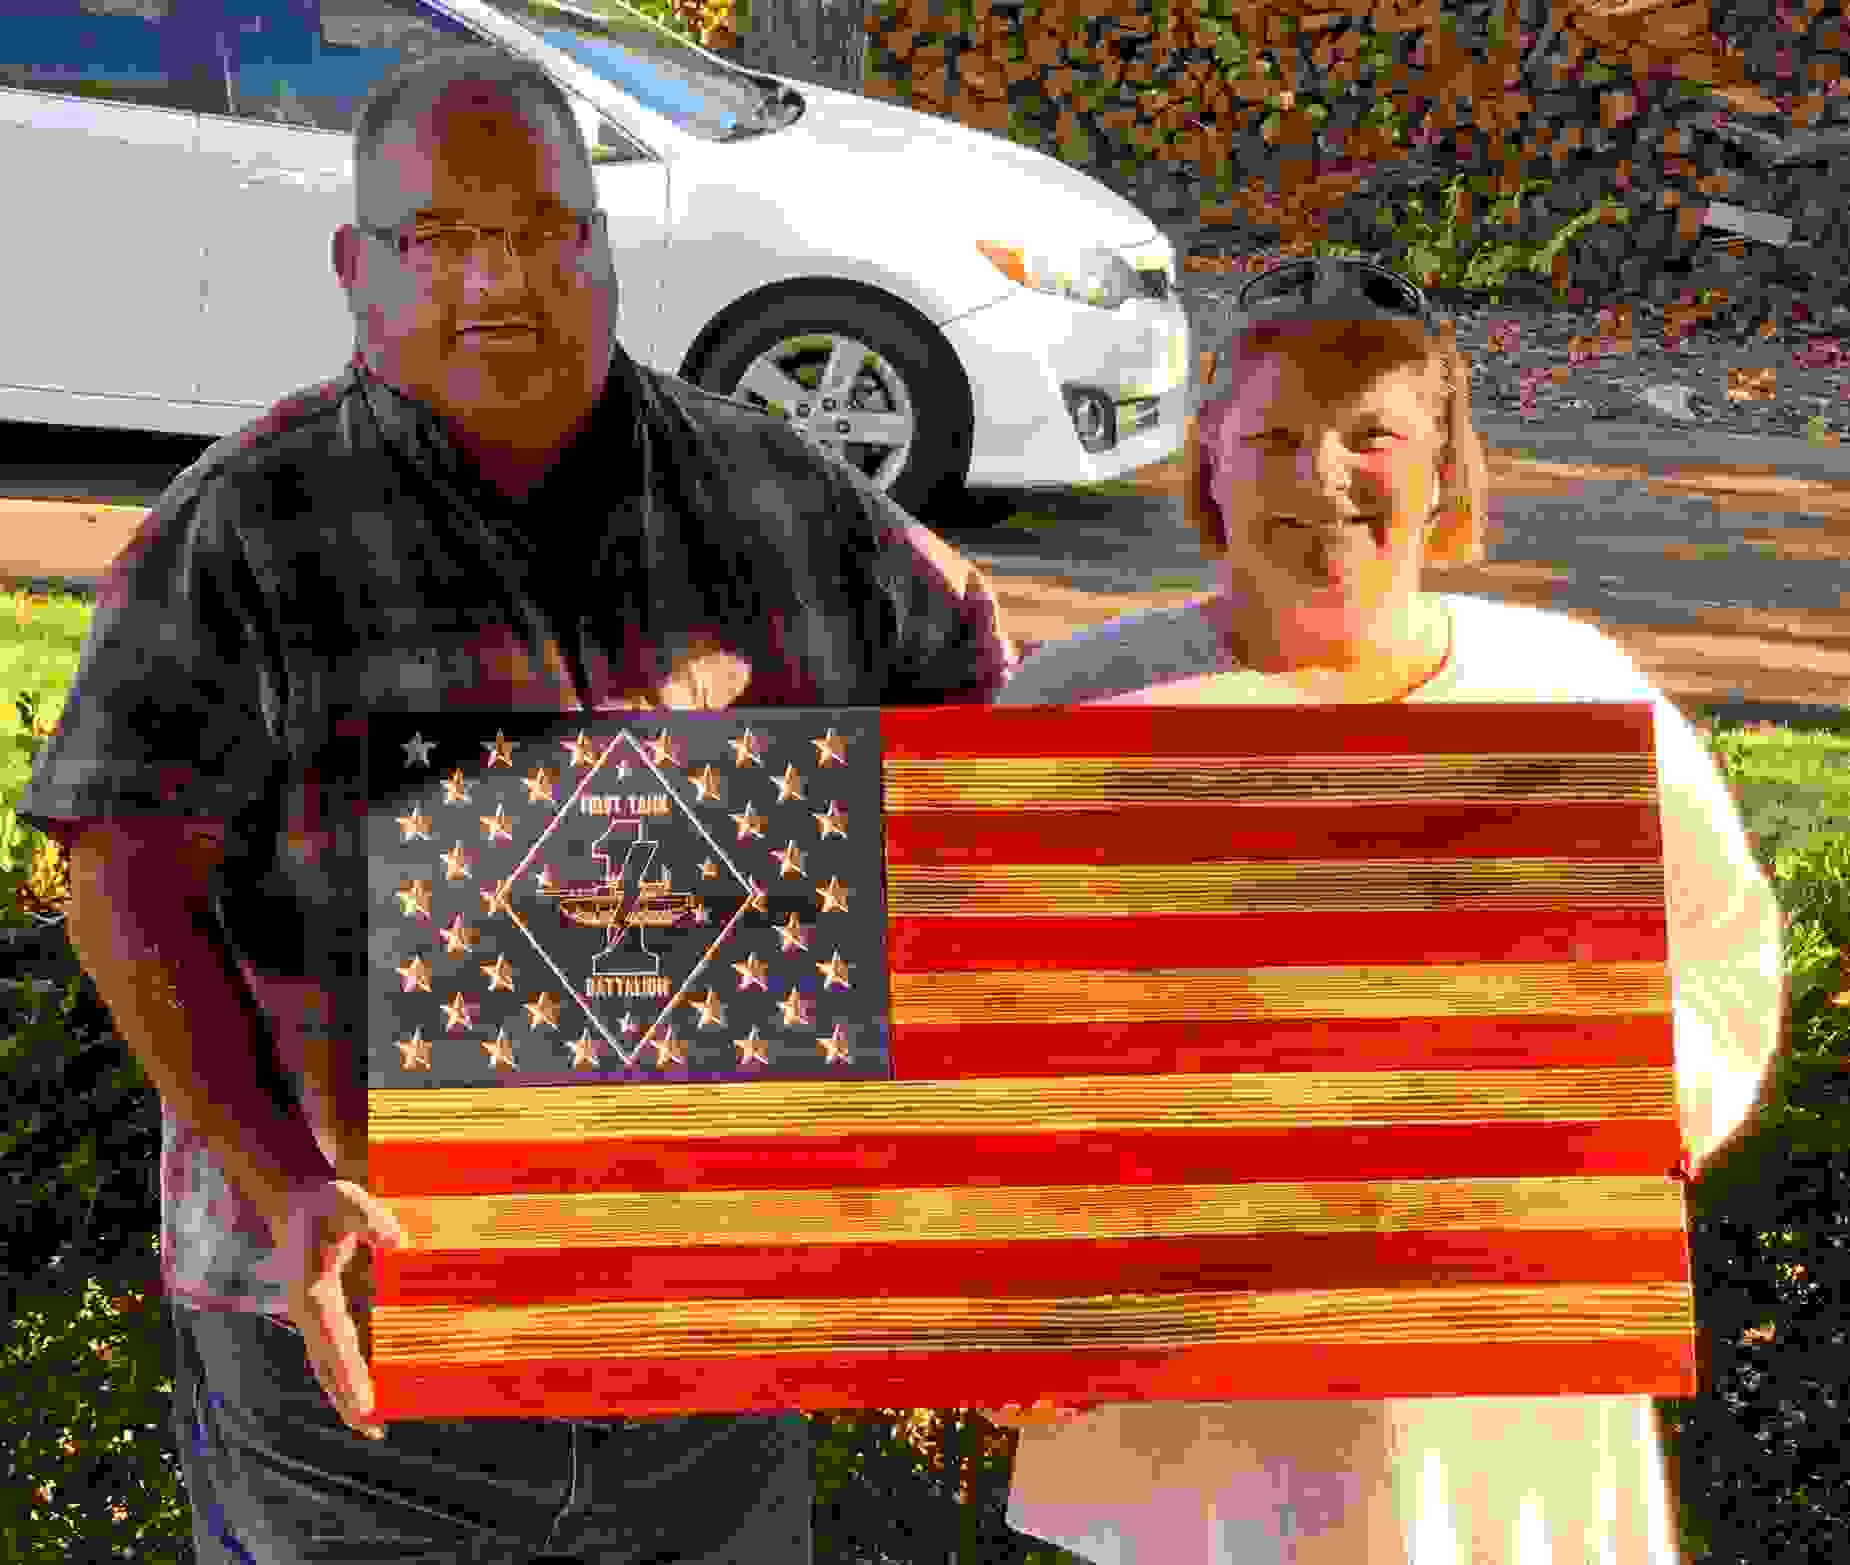 Marine Corps First Tank Battalion flag held by proud parents.